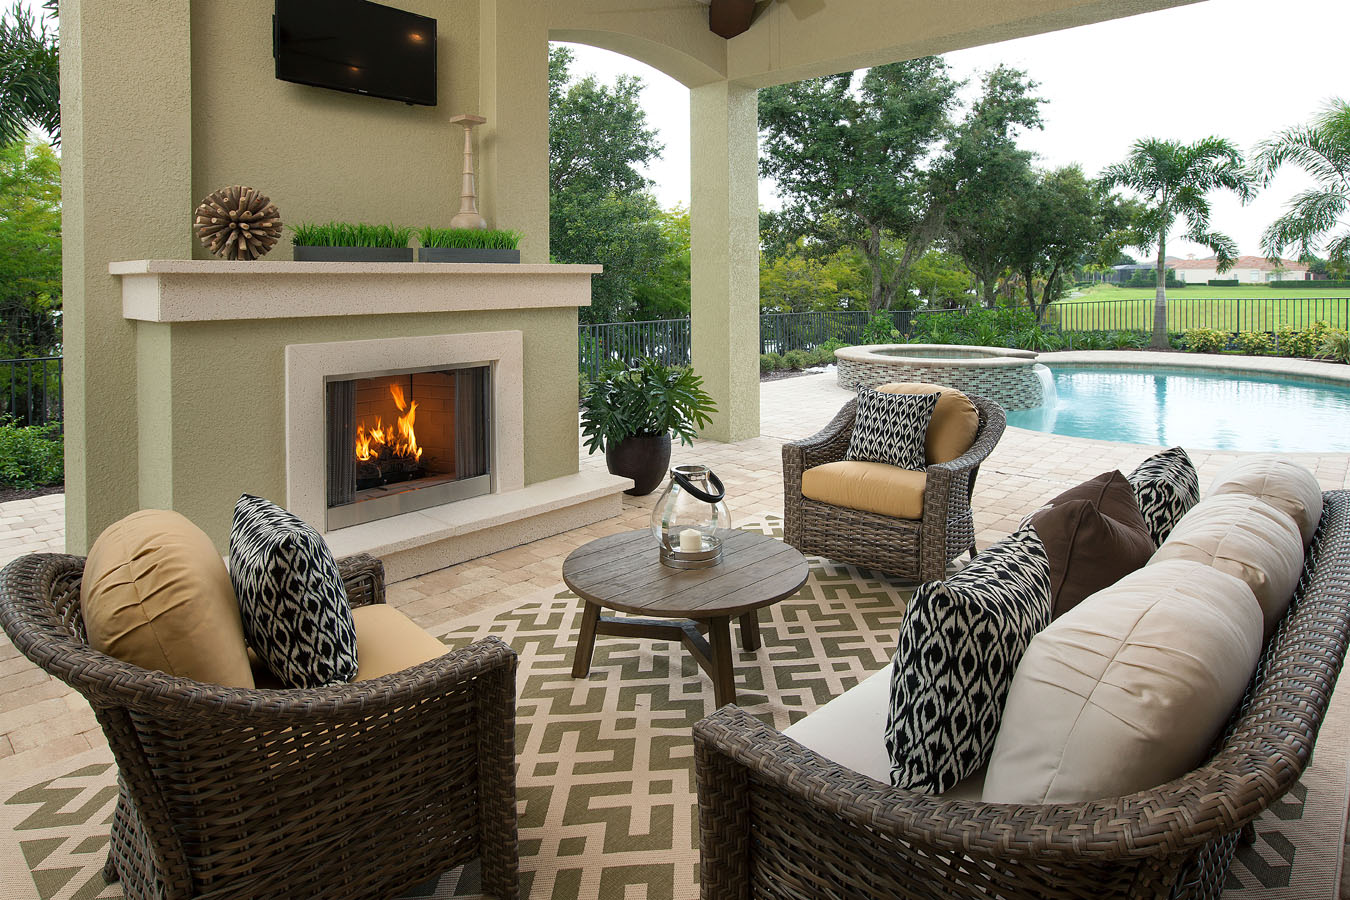 Beasley henley interior design unveils interior design for Outdoor rooms with fireplaces